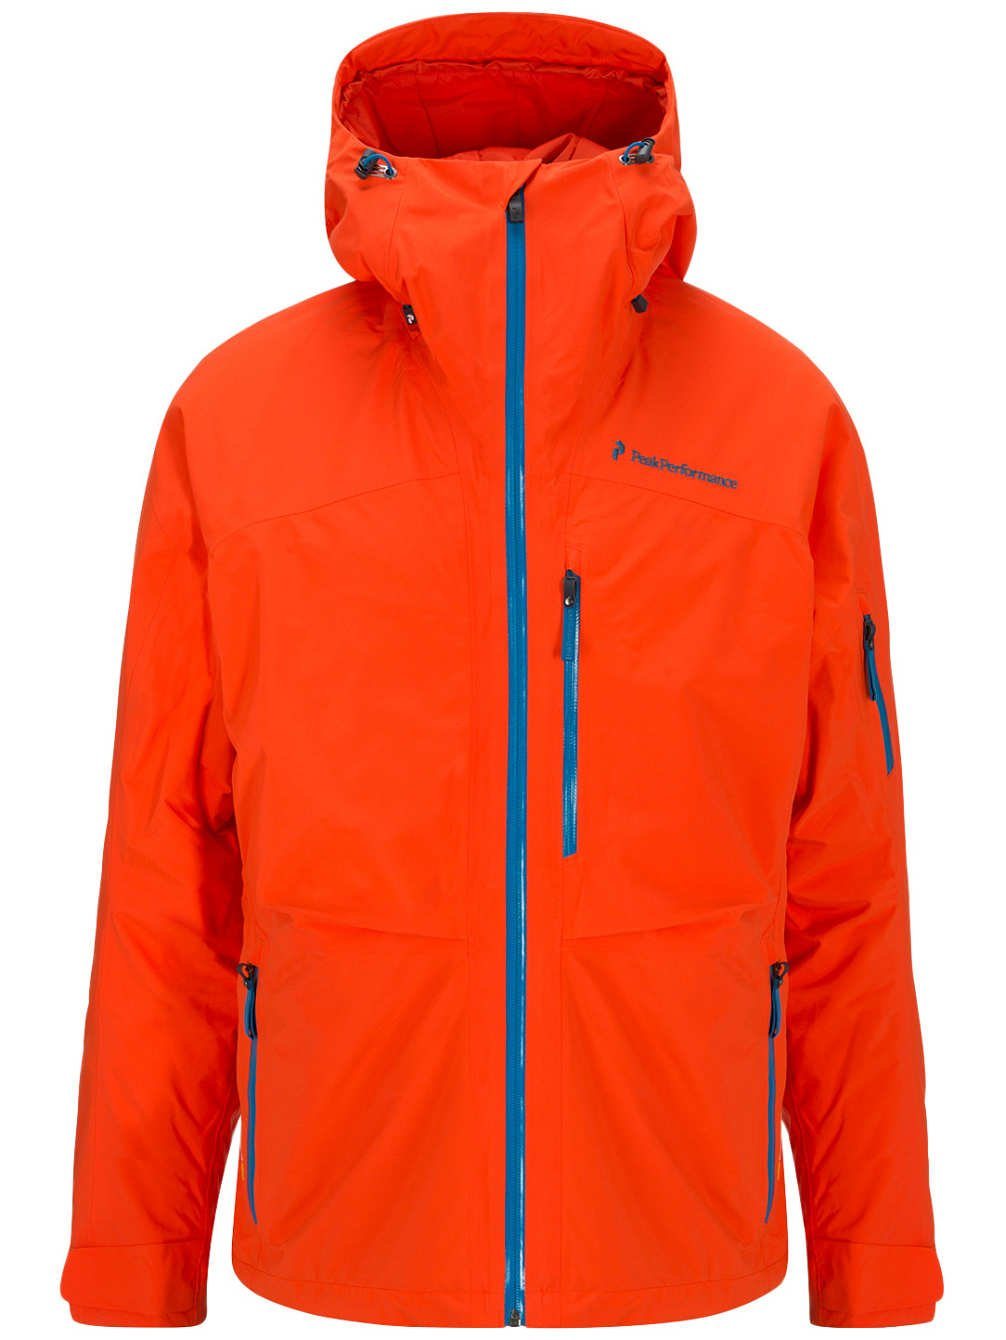 Herren Snowboard Jacke Peak Performance Heli 2Layer Gravity Jacket